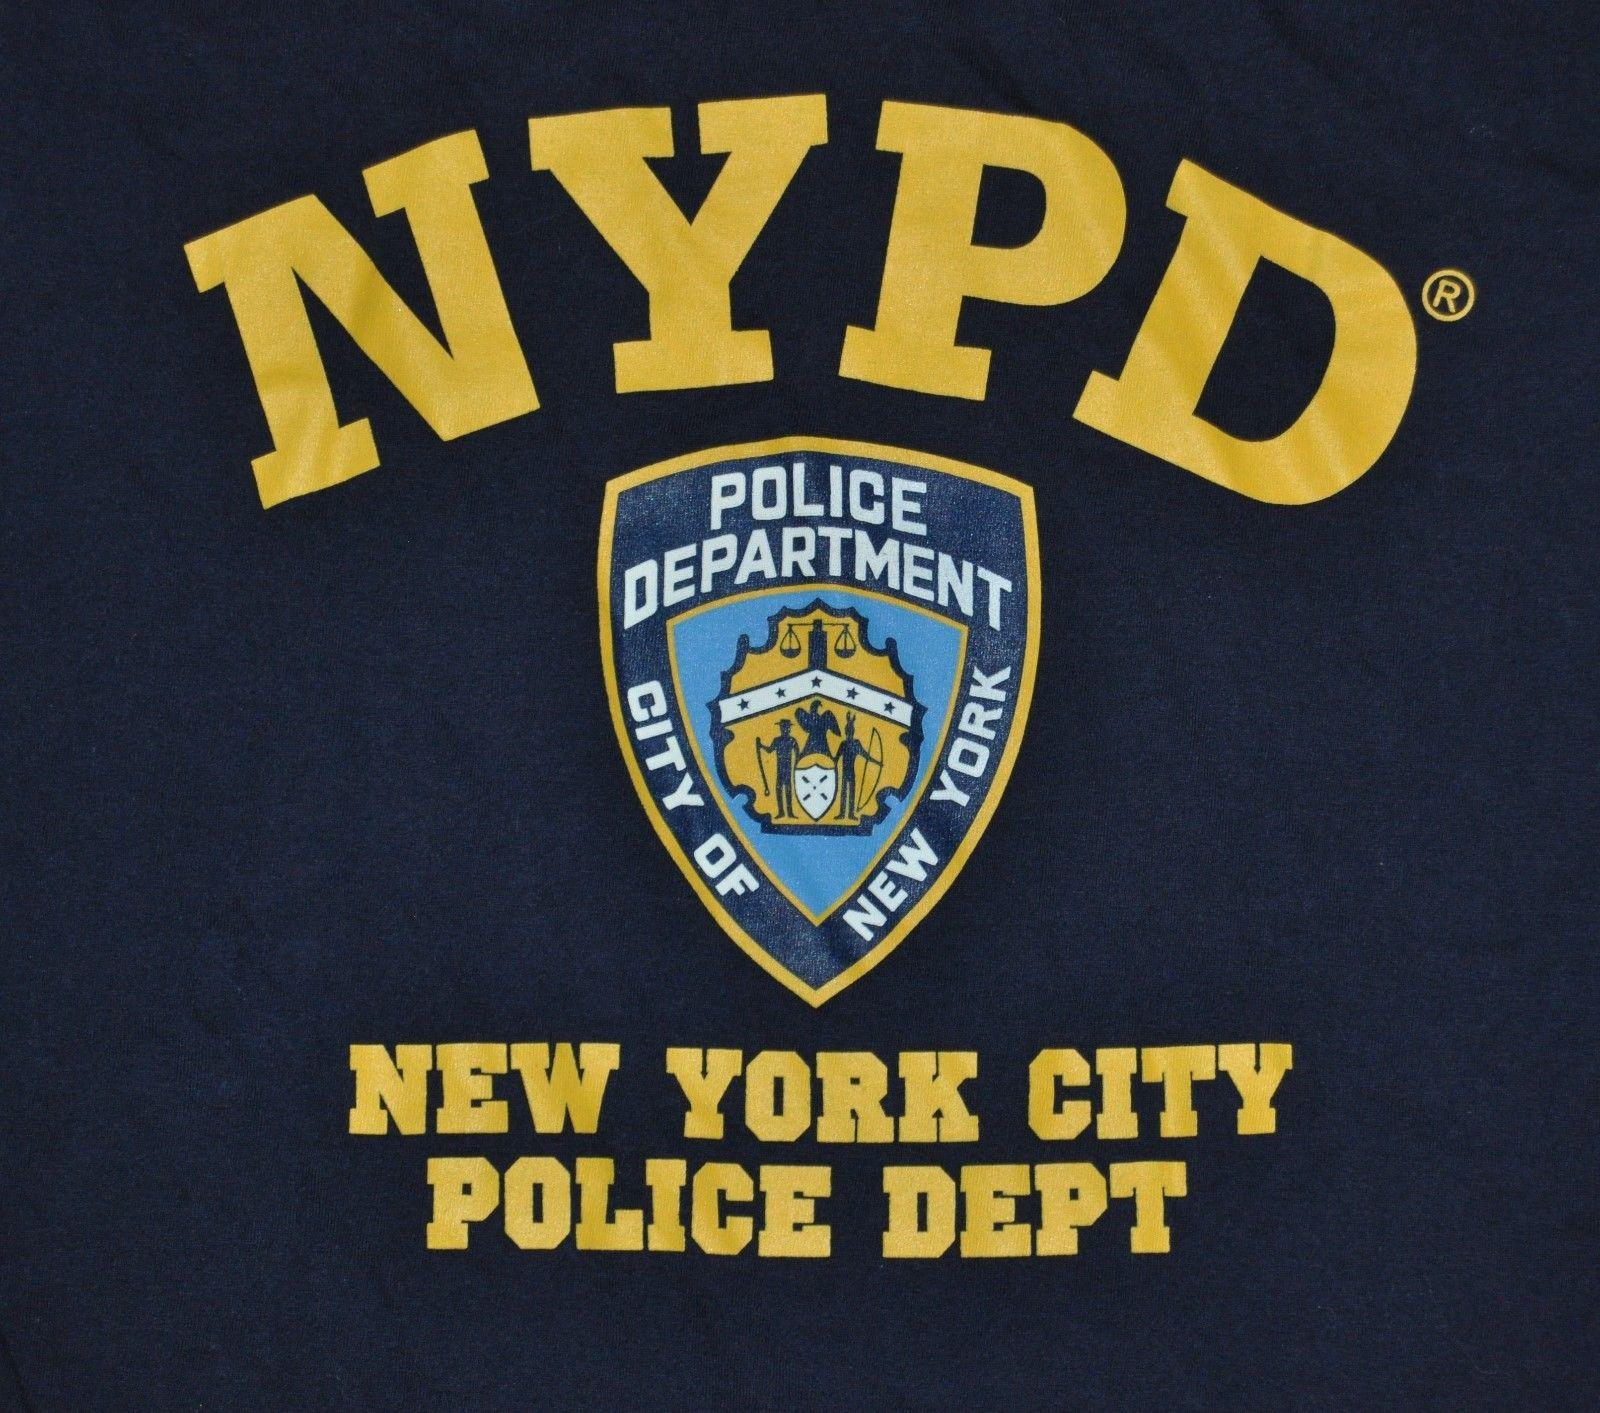 bc57ad6f T SHIRT S SMALL NYPD NEW YORK CITY POLICE DEPARTMENT Popular T ...